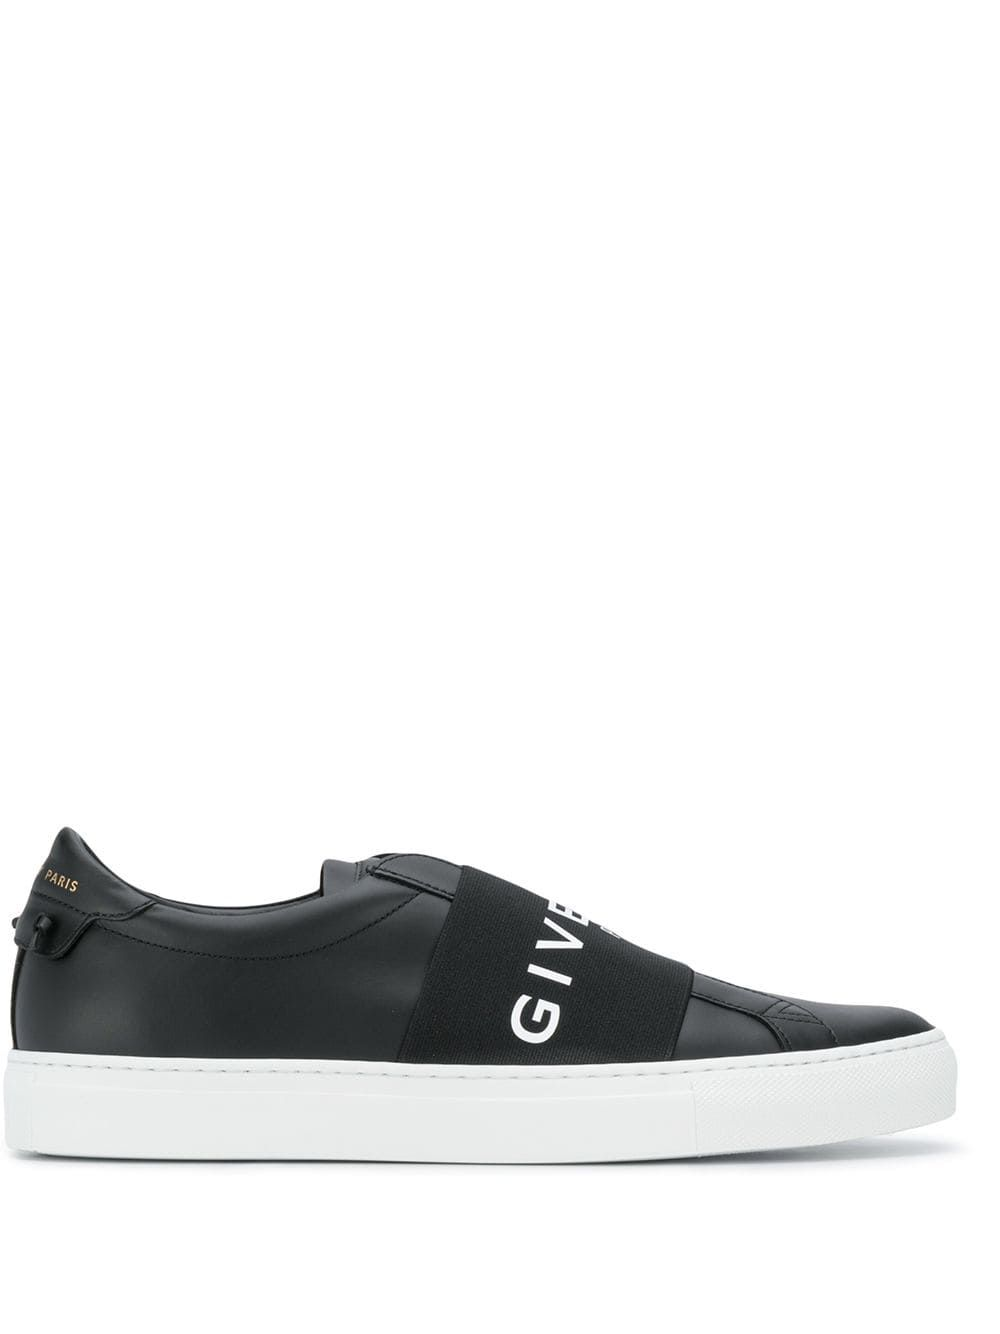 Givenchy Urban Street Logo-Print Leather Slip-On Sneakers In Black